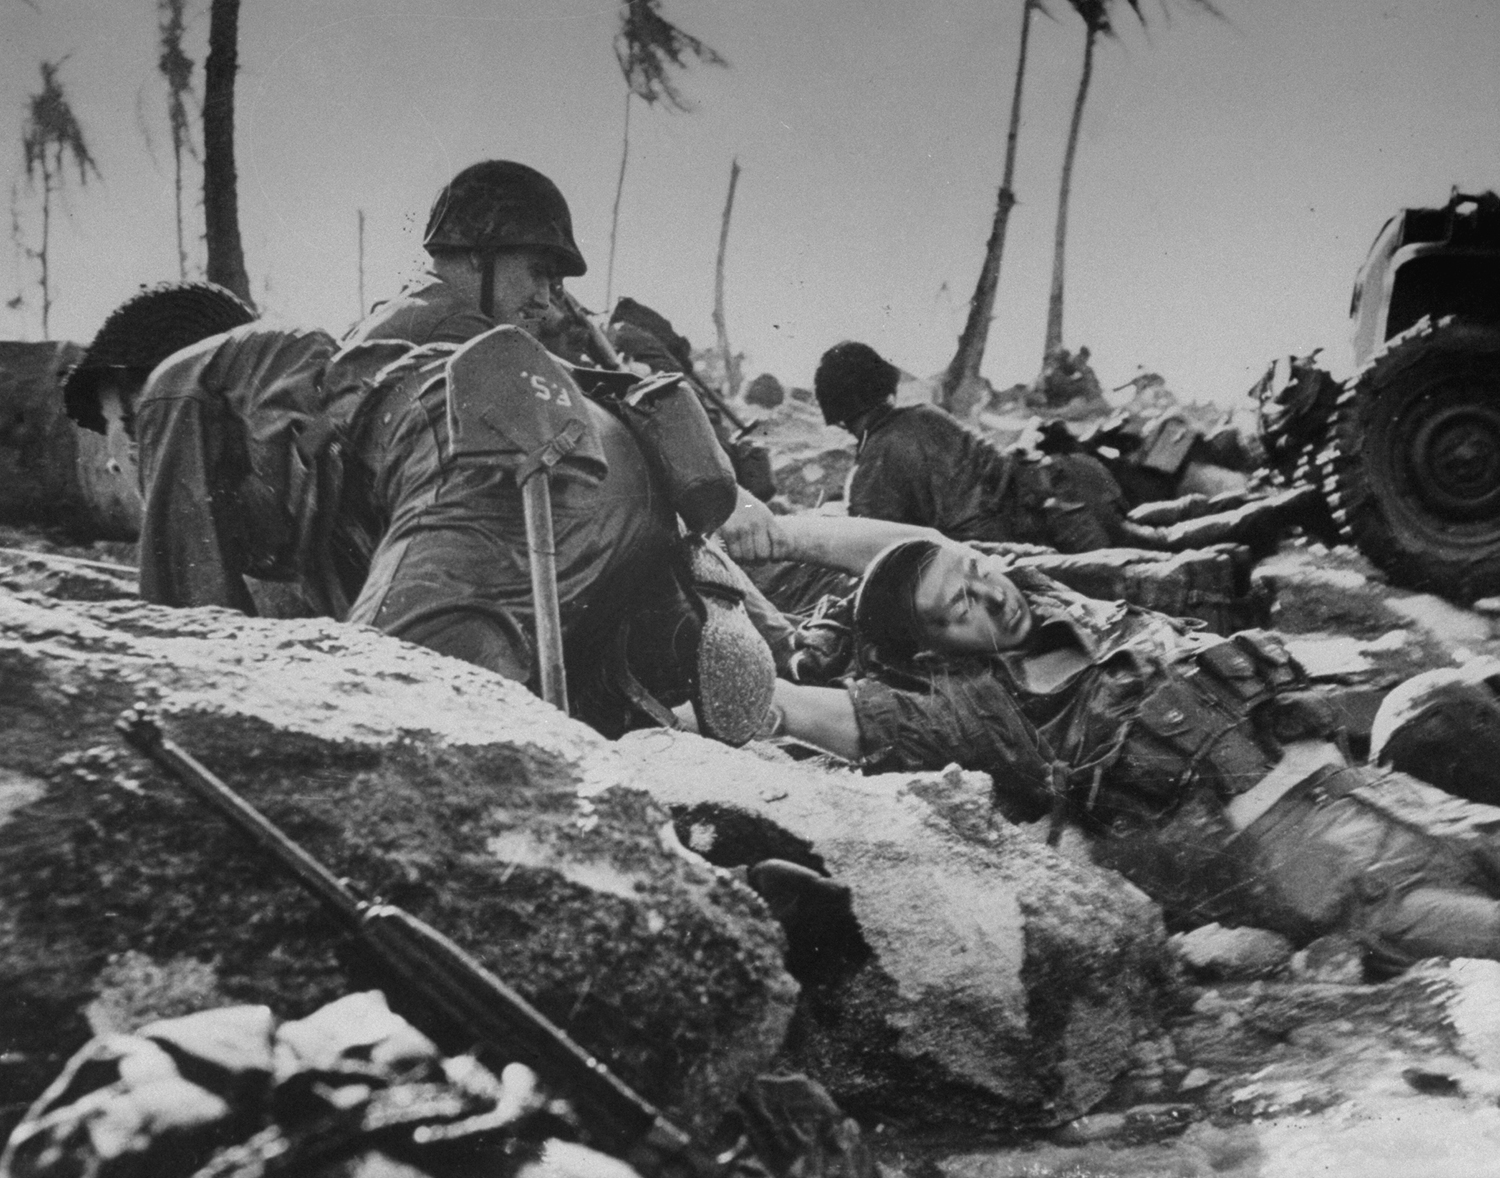 Caption from LIFE.  On the coral beach of Eniwetok's Engebi Island, a Marine drags a dead comrade out of the surf.  See write-up below for a discussion of this photograph.